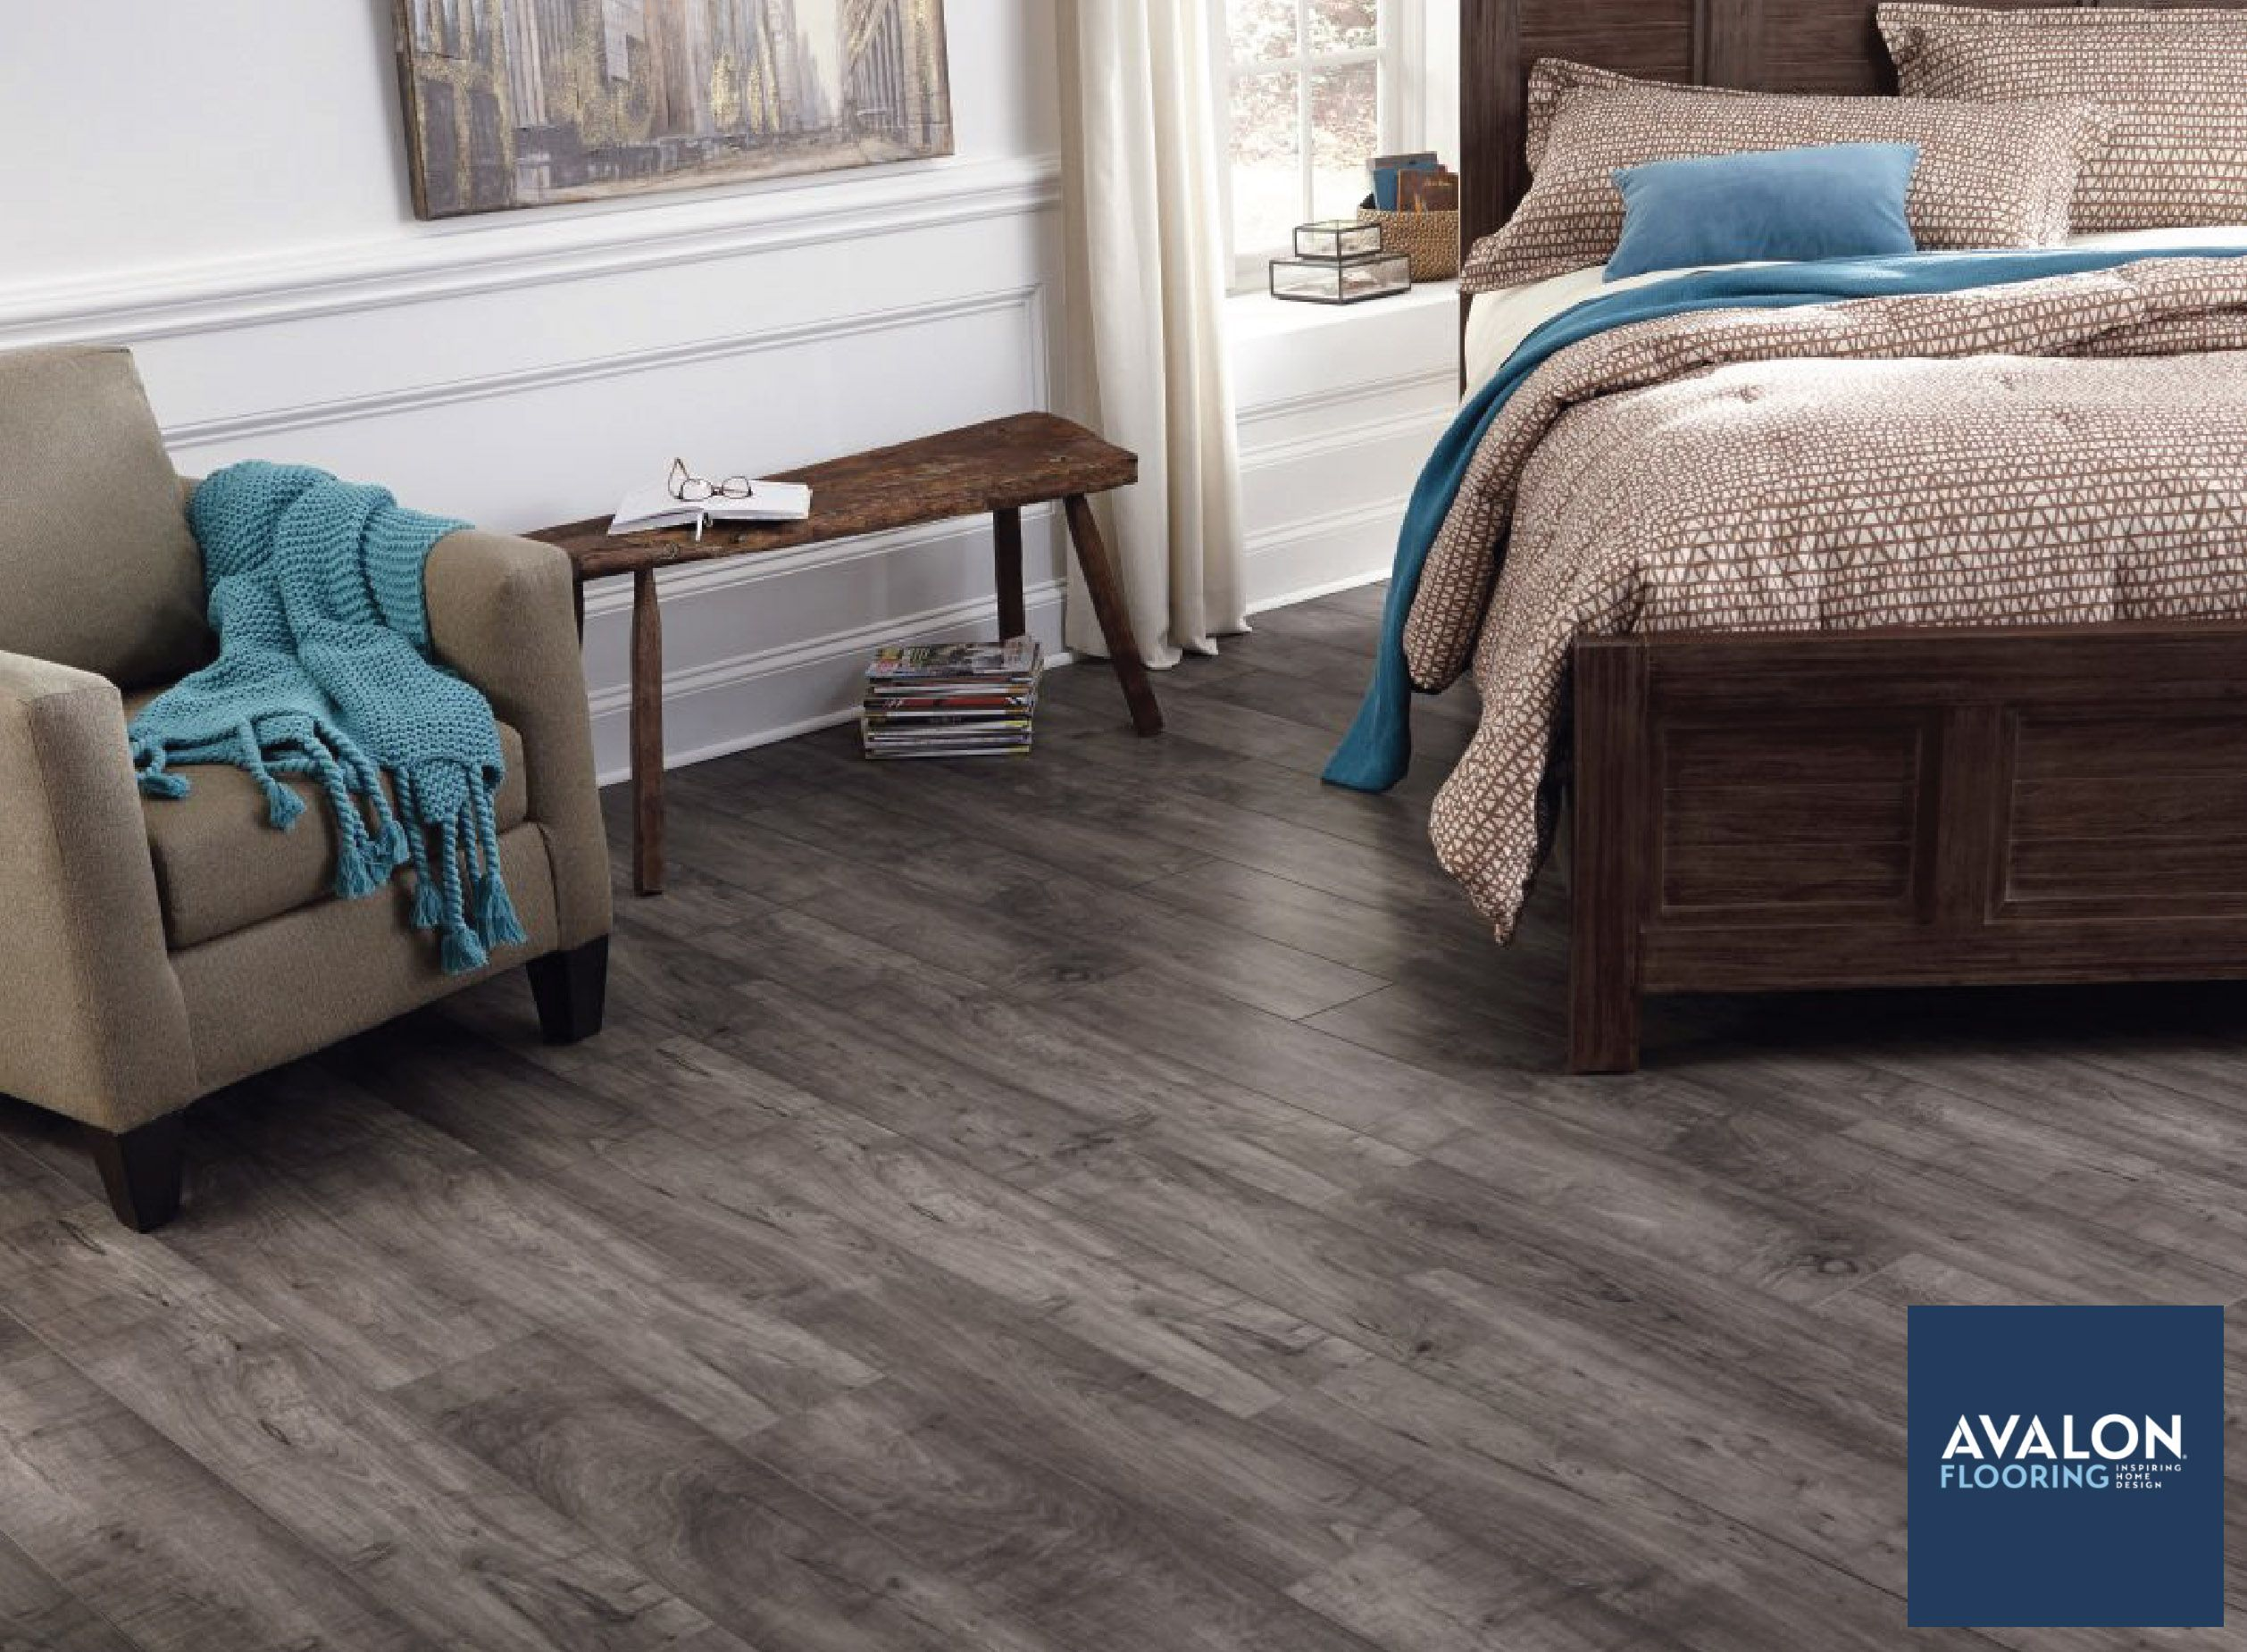 A Good Choice For Your Bedroom Is Flooring That Looks And Even